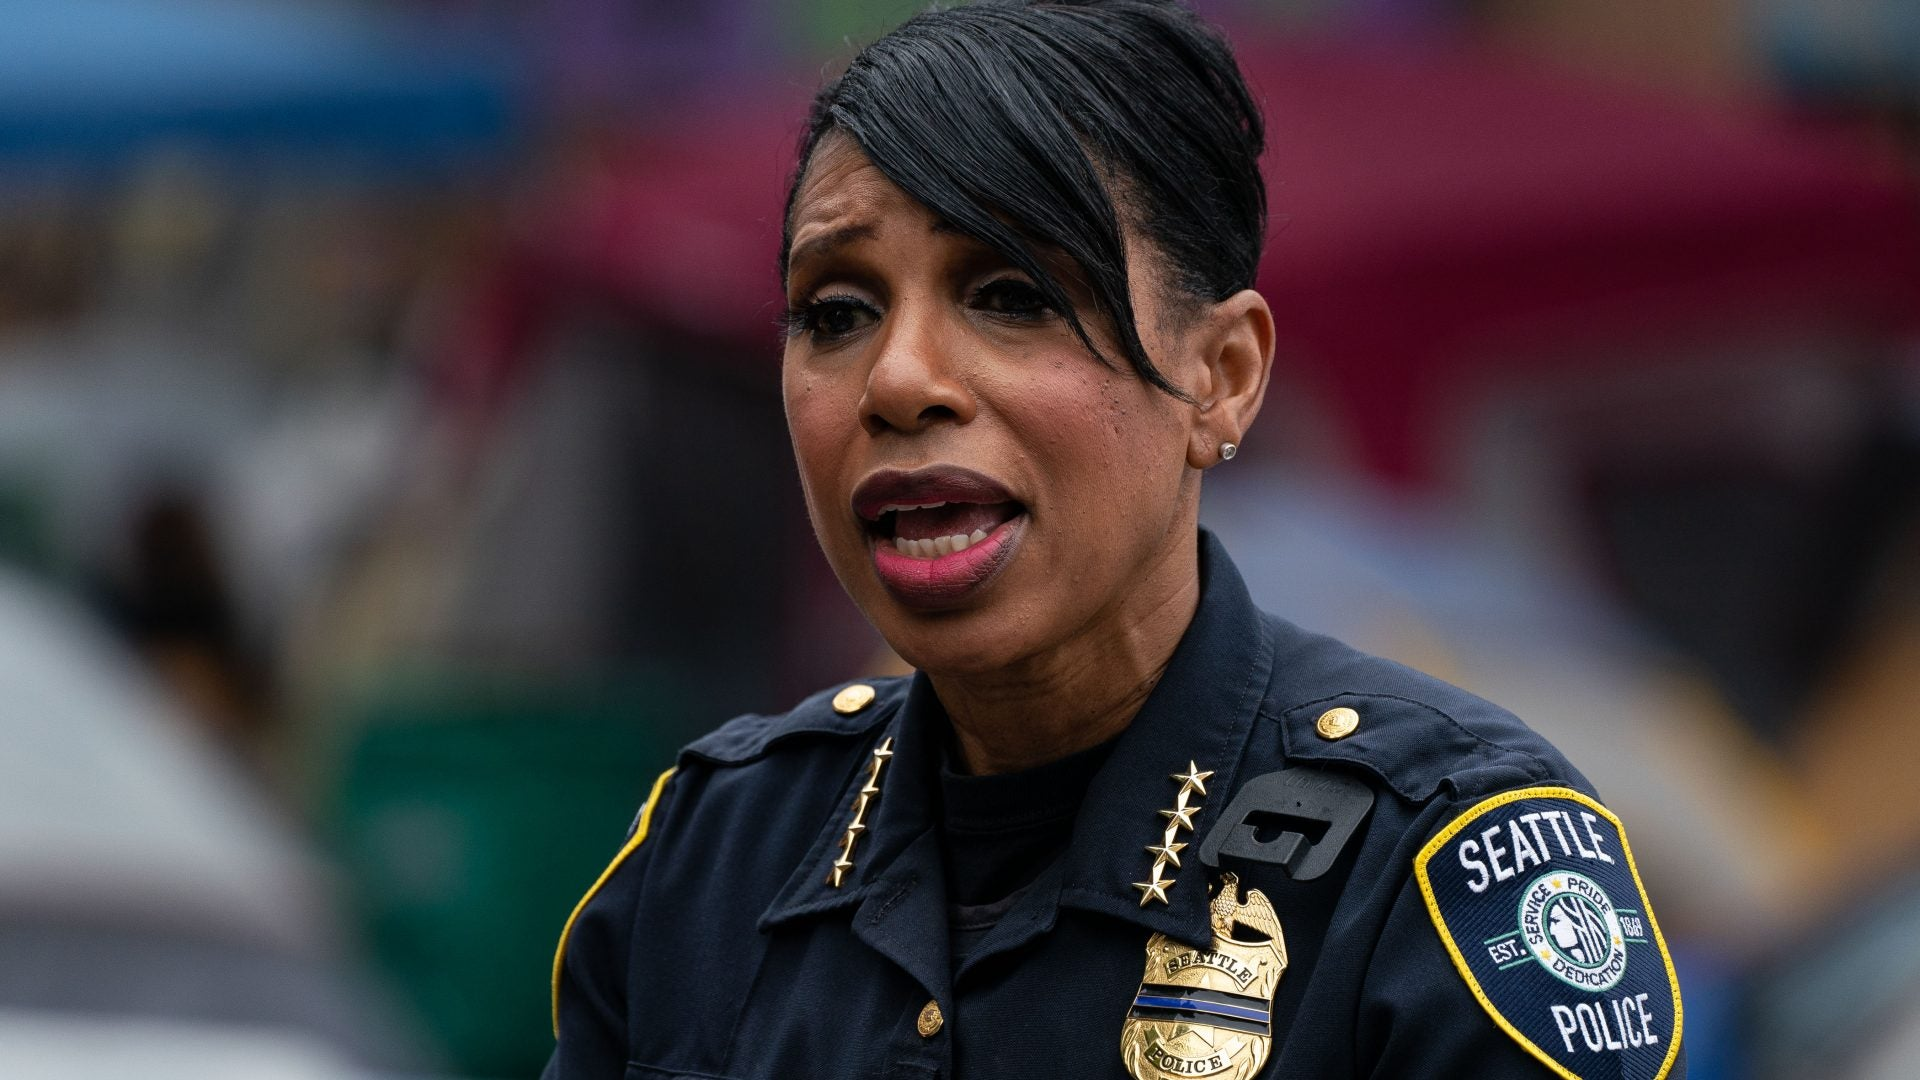 Seattle Police Chief Carmen Best Retiring After City Council Votes To Cut Police Budget